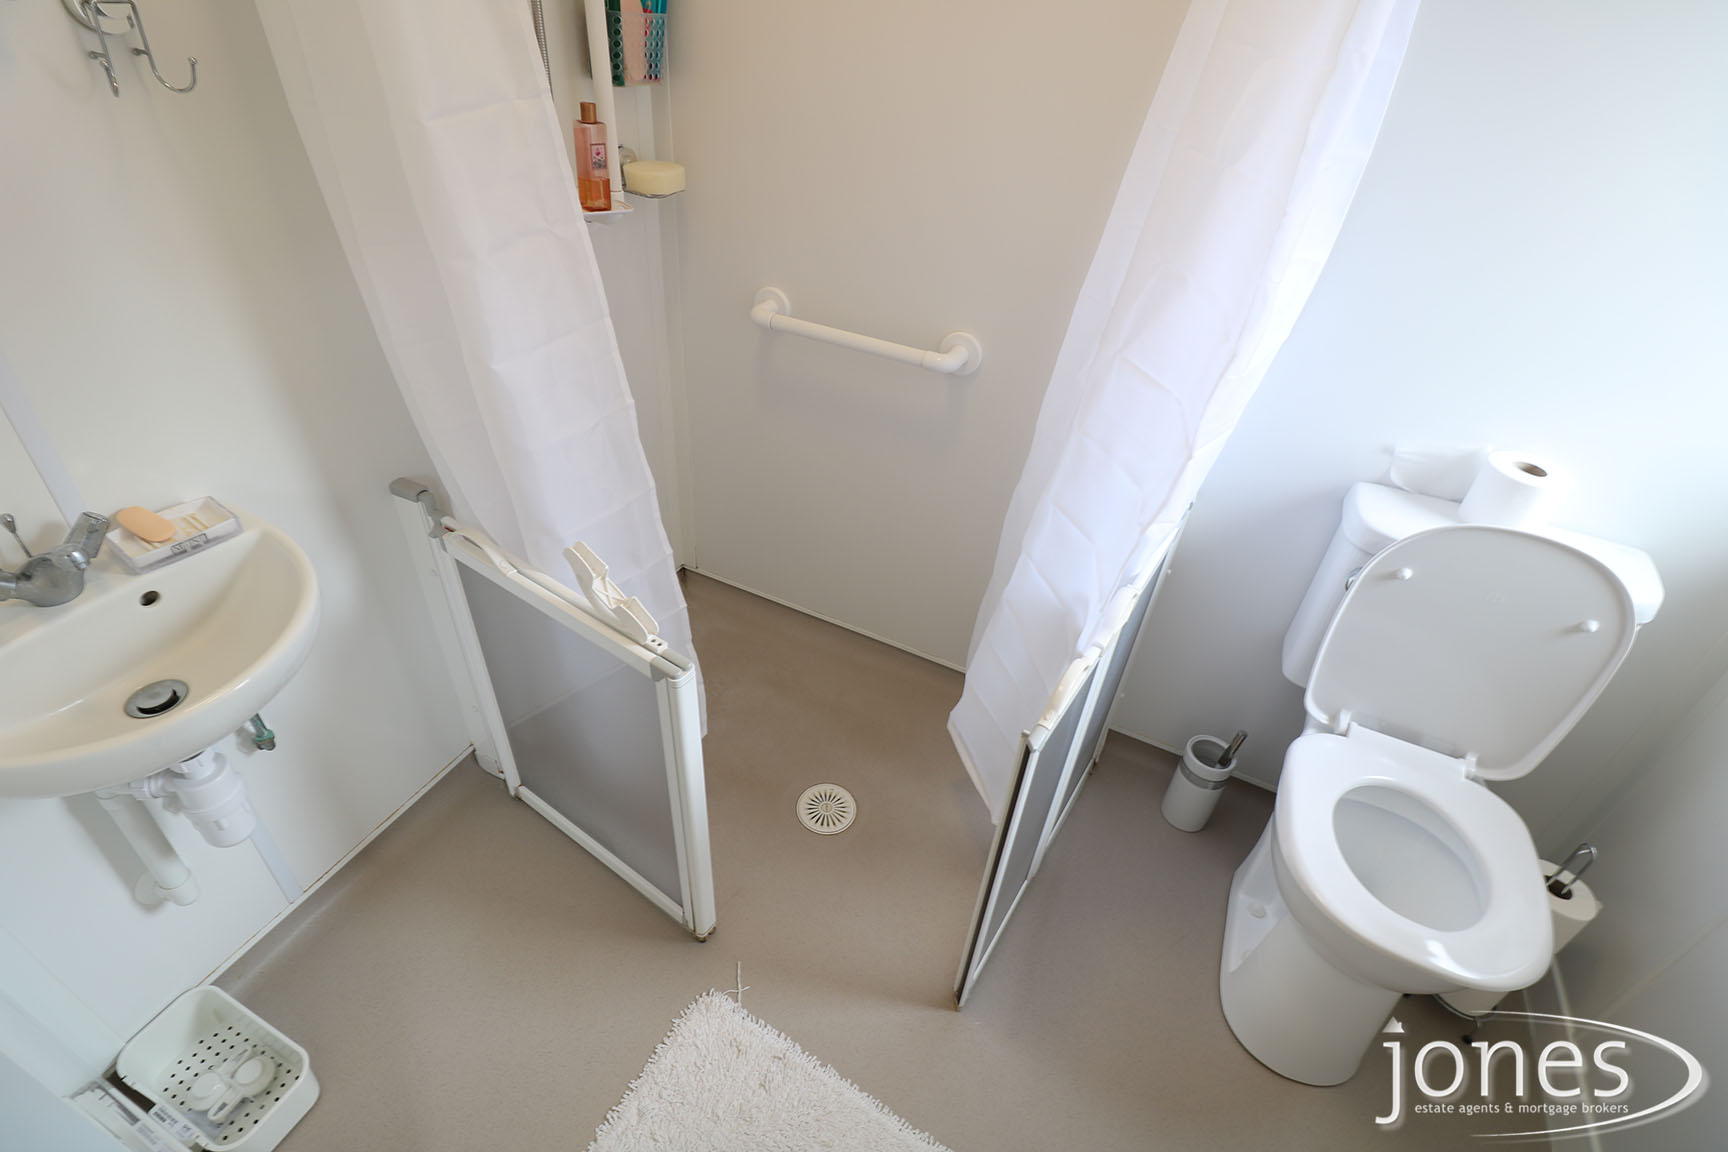 Home for Sale Let - Photo 08 Mill Crescent, Whitwell, Worksop, S80 4SF